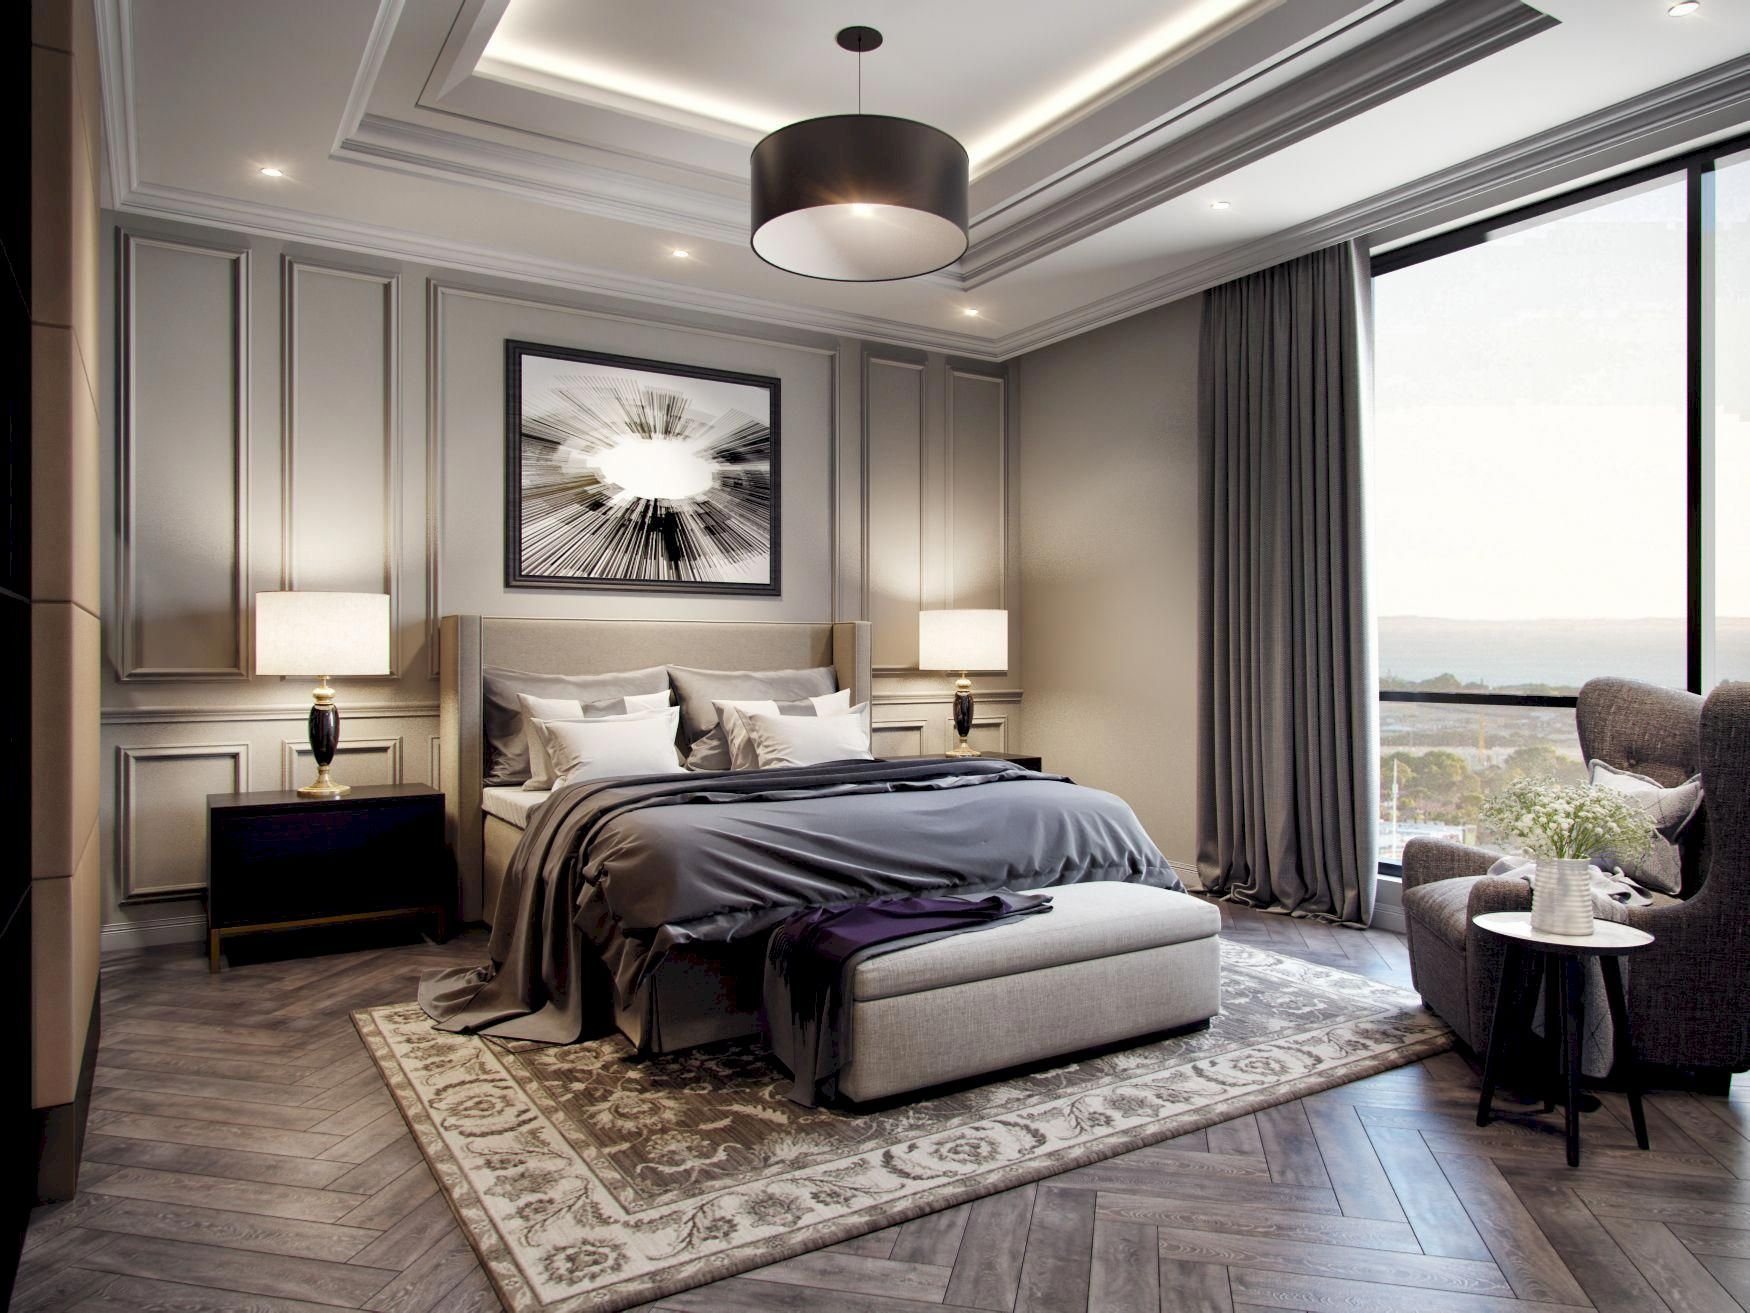 48 Impressive Classic Modern Bedroom Design Ideas Luxury Bedroom Master Modern Classic Bedroom Luxurious Bedrooms